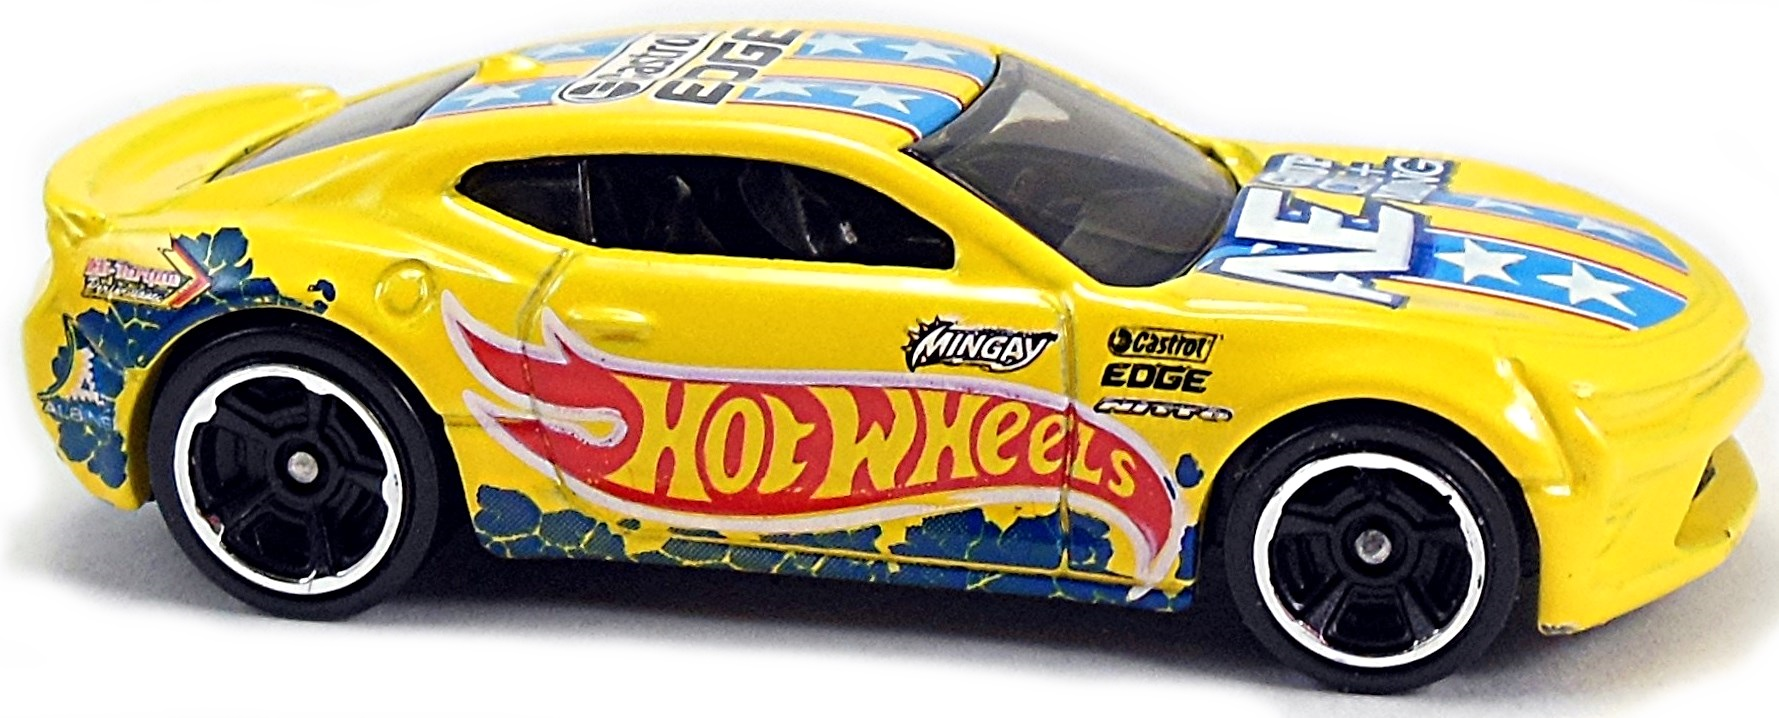 Page 3 in addition Camaro Specifications likewise 1969 Rallysportz moreover Andy Mccoy Race Cars Rolls Out Swoopy New 69 Chevelle Pro Mod Car as well 379991287283538044. on yellow 69 camaro